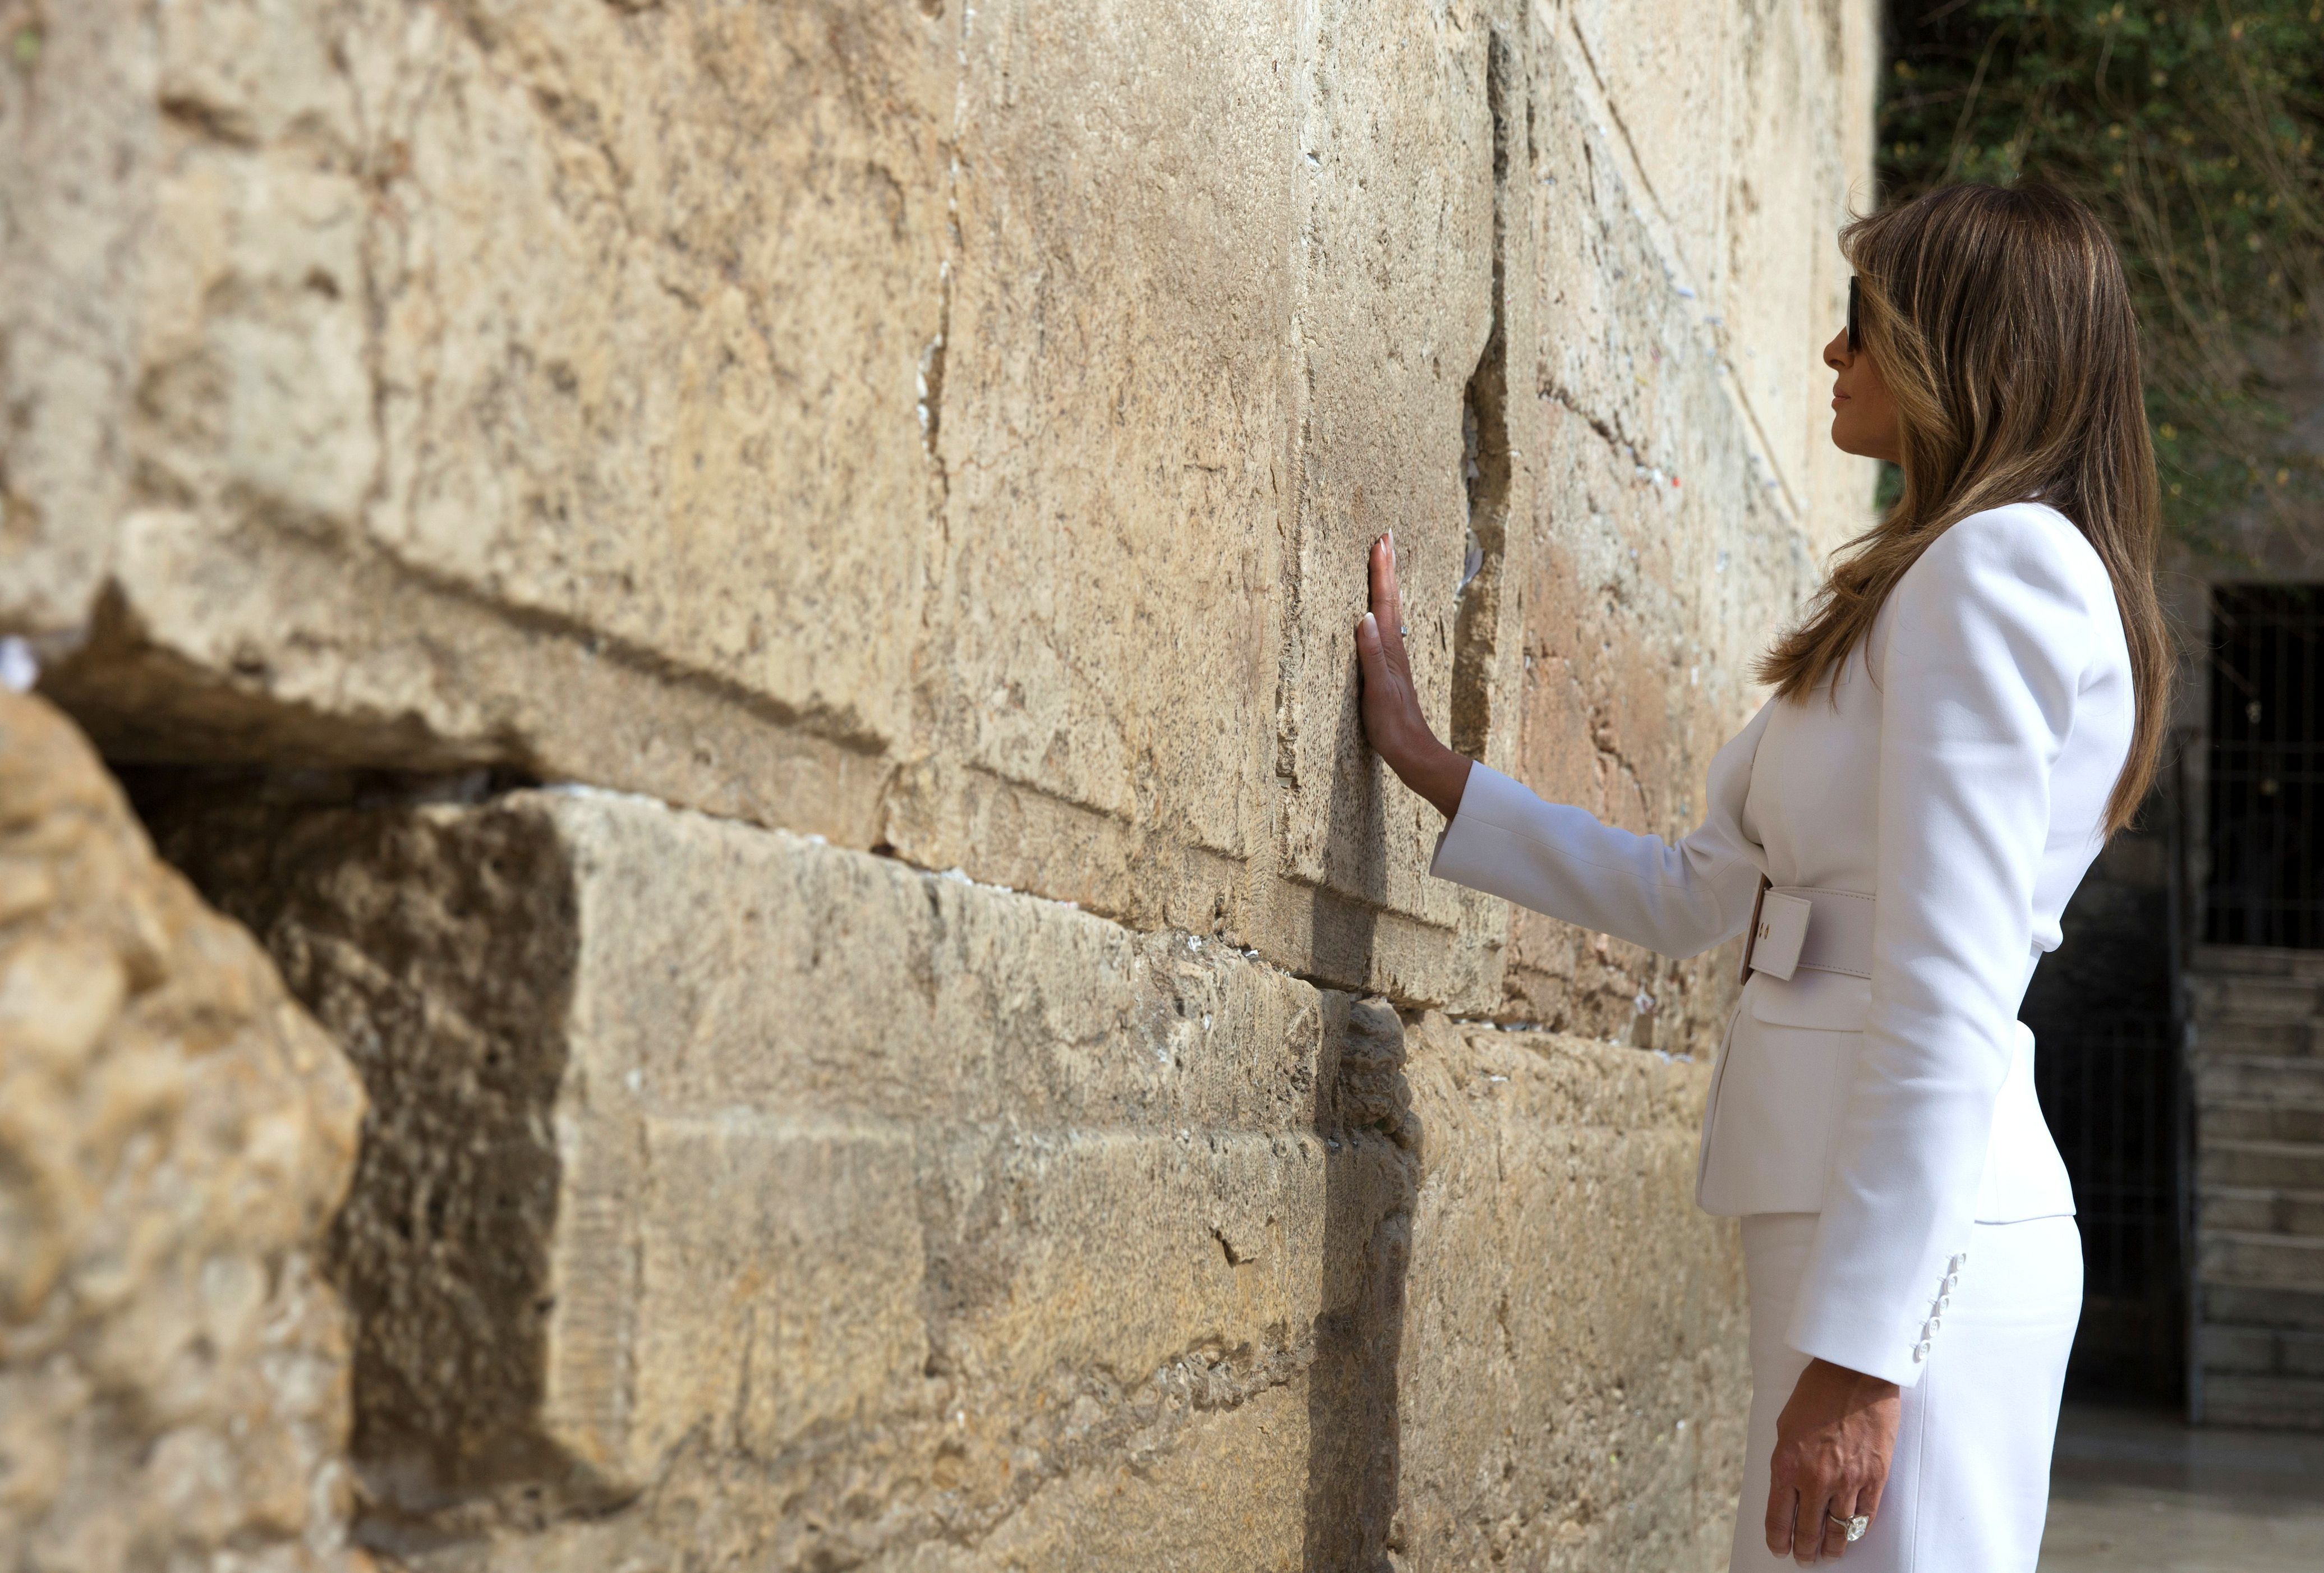 Melania Trump slaps away Donald's hand after arriving in Israel